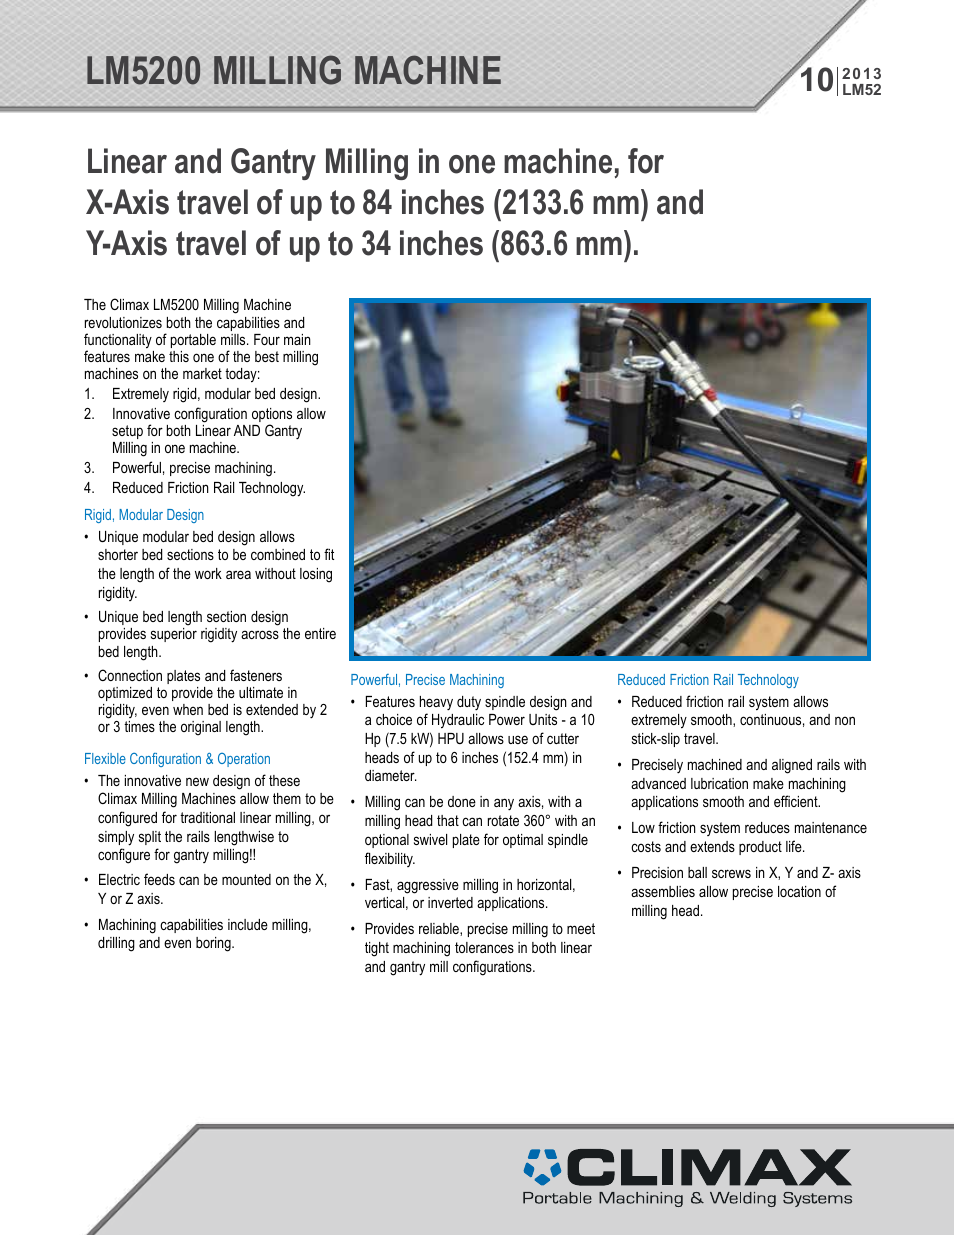 Climax LM5200 LINEAR/GANTRY MILL User Manual | 12 pages